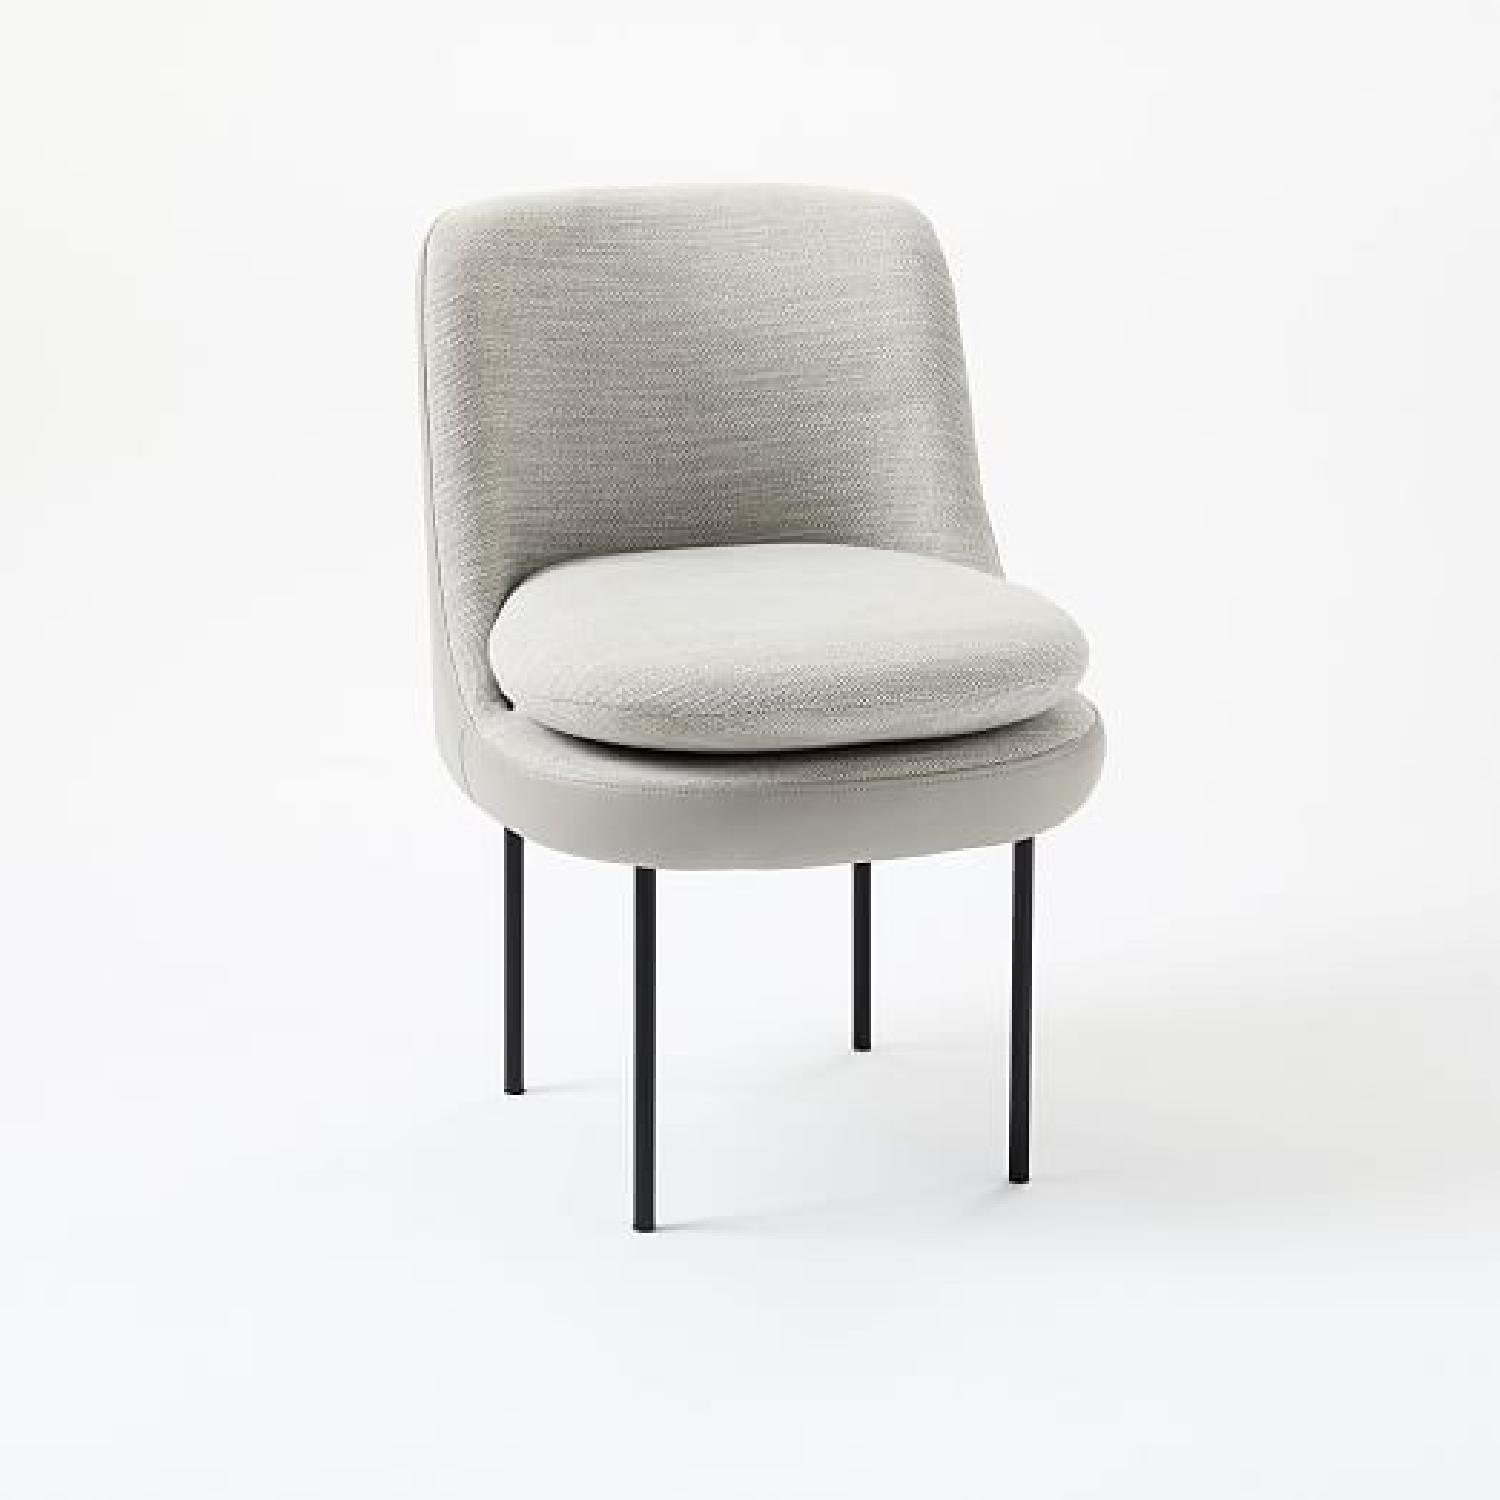 West Elm Curved Leather Dining Chair in Feather Gray